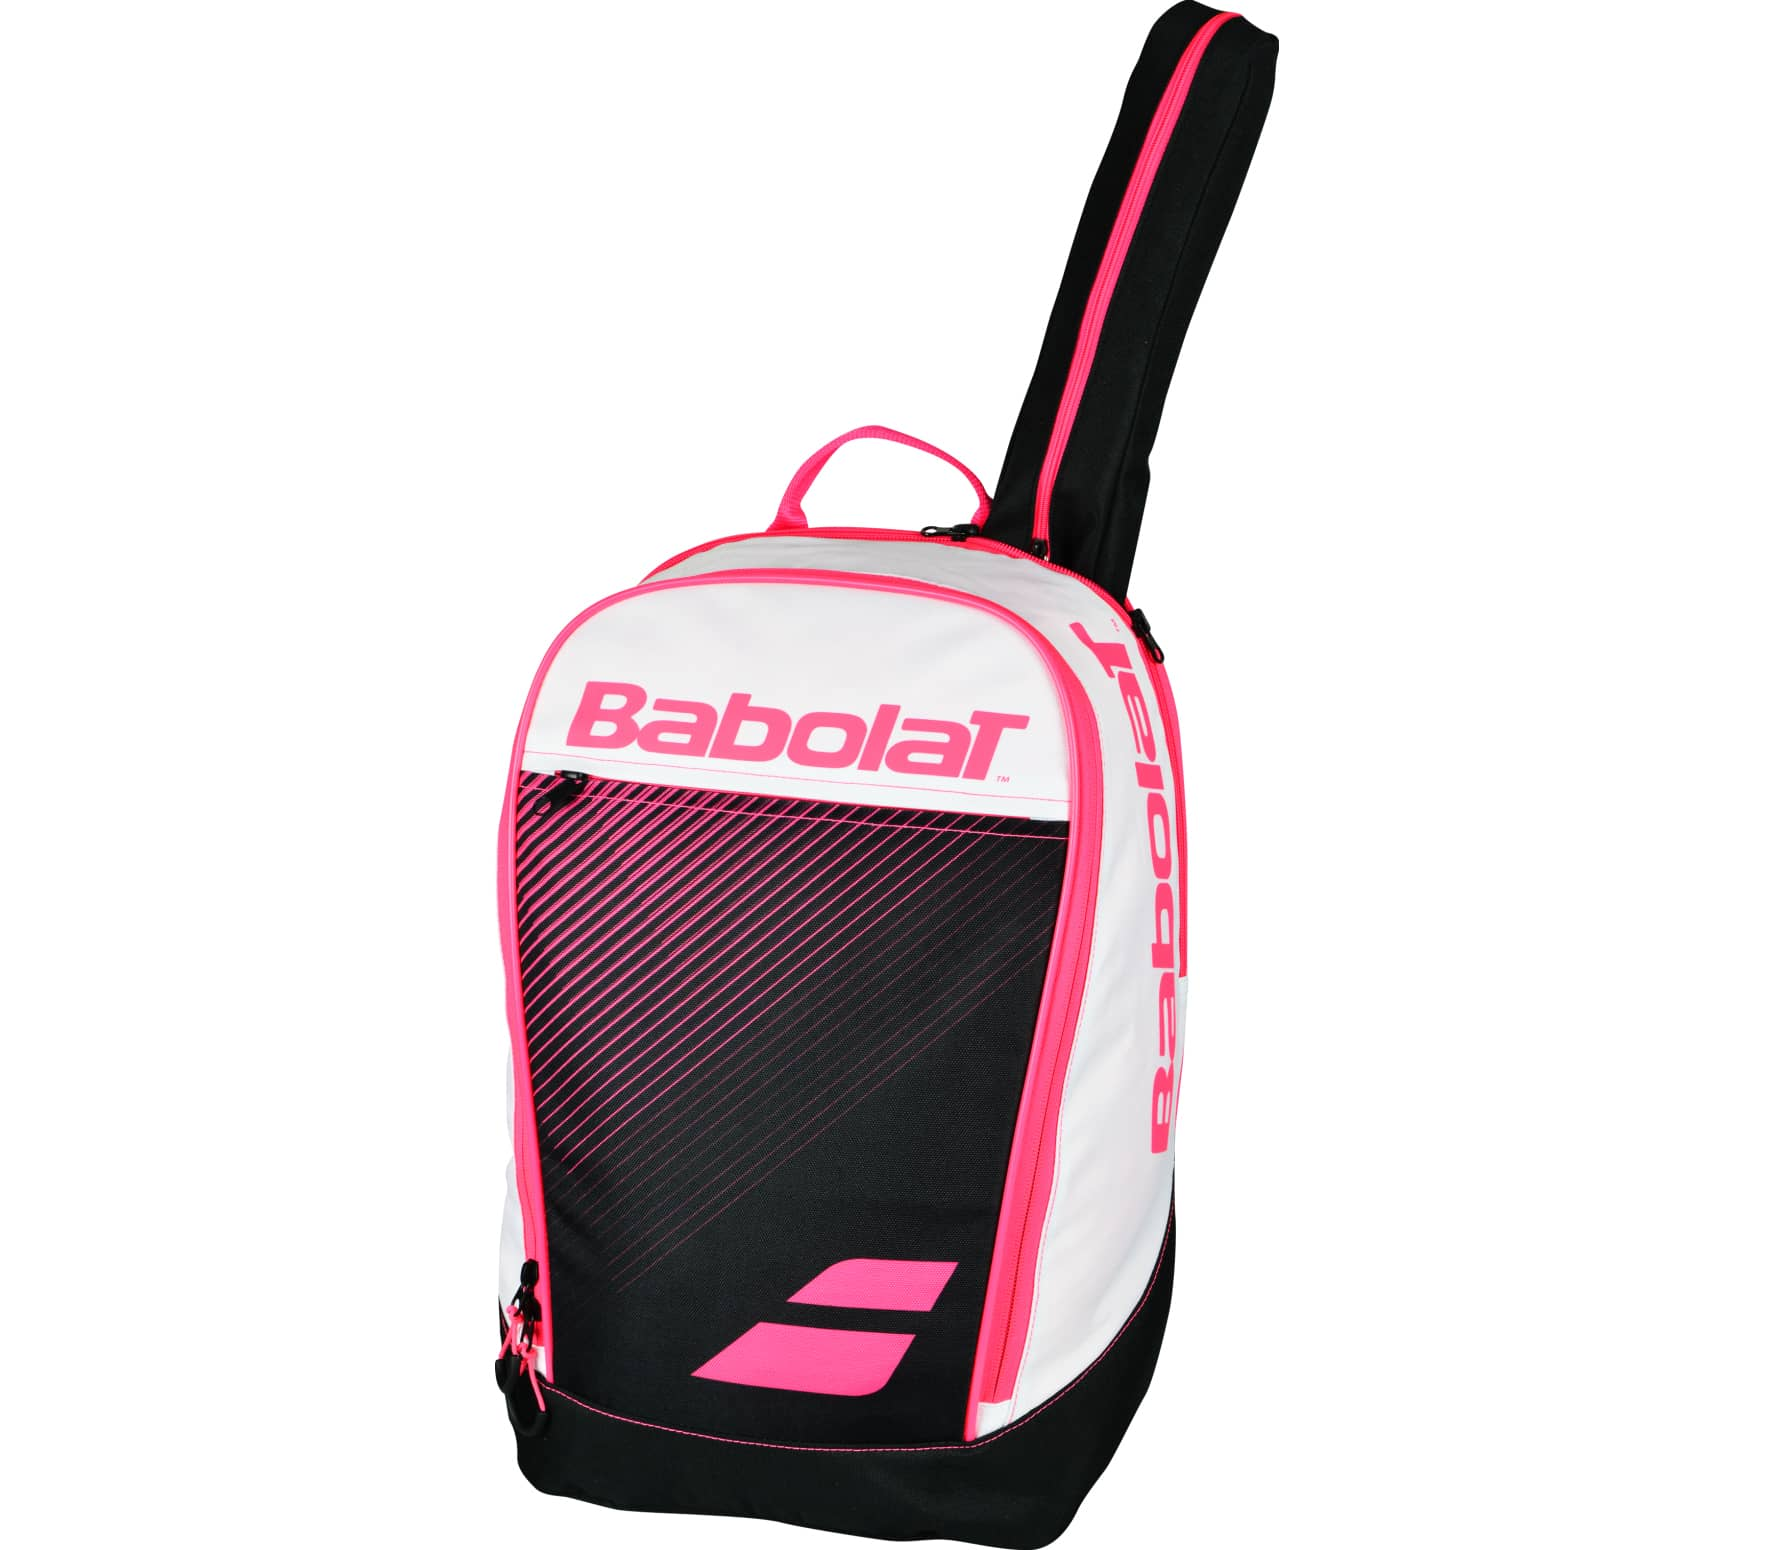 Babolat - backpack Classic Club tennis bag (pink)